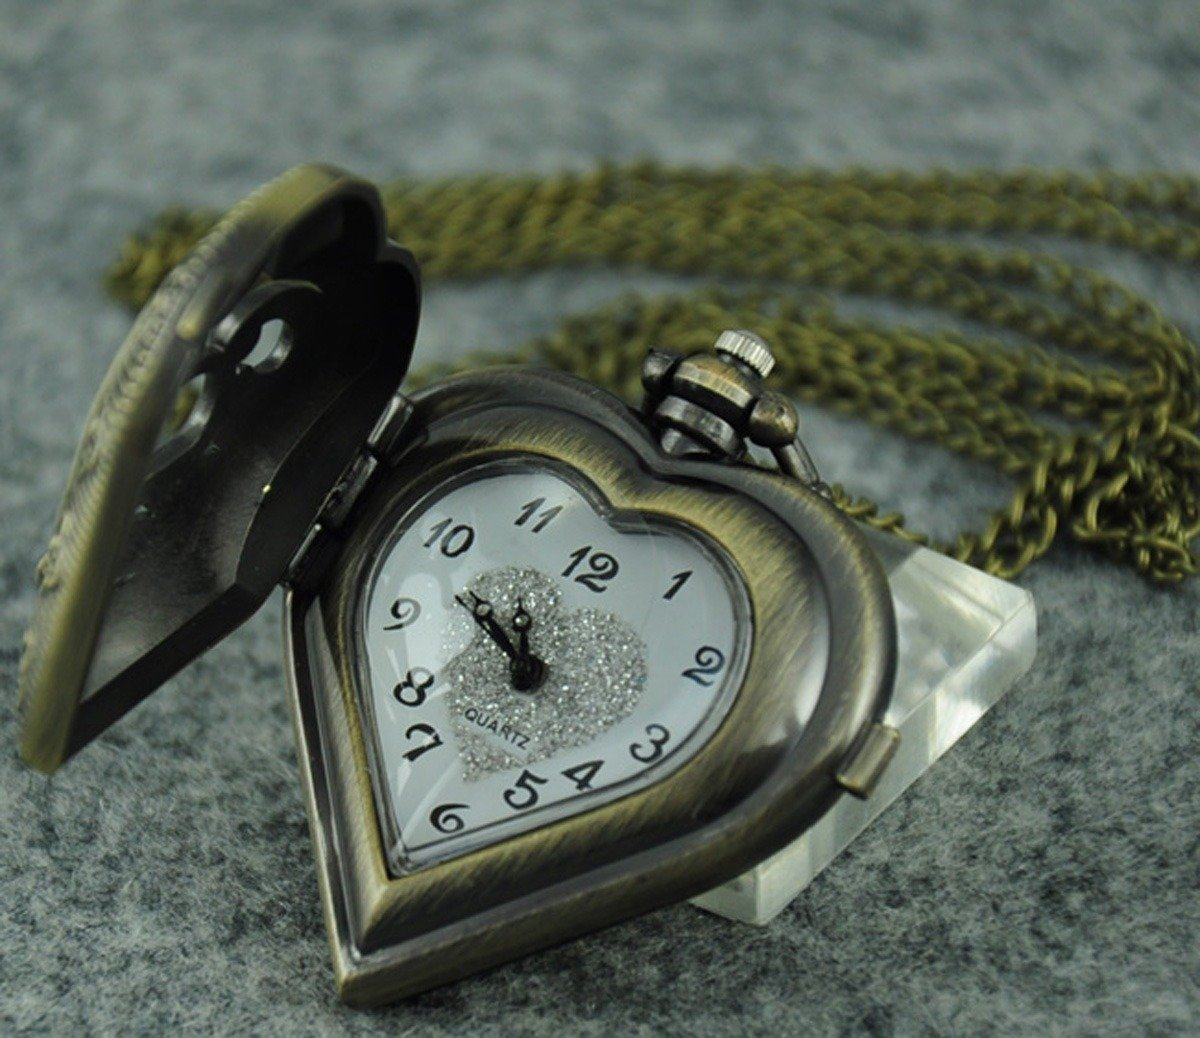 VIGOROSO Men's Antique Steampunk Hollow Out HEART Harry Potter Locket Pocket Watch Necklace